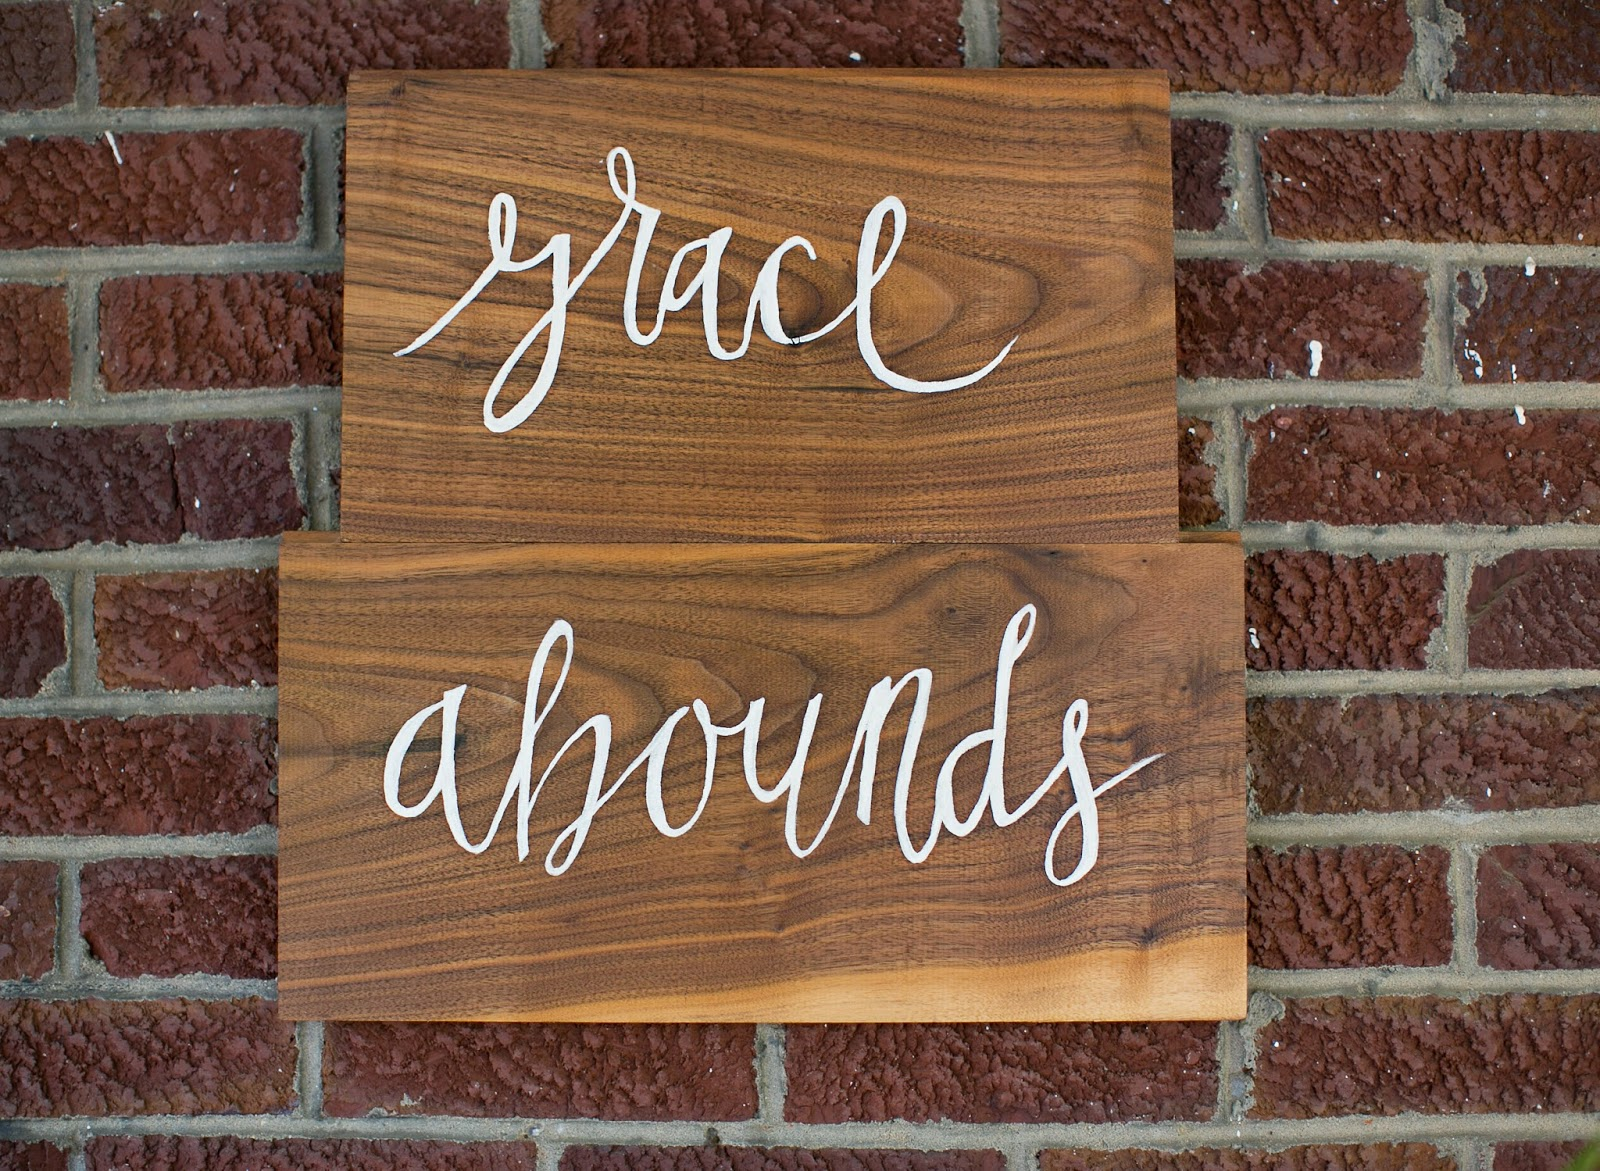 Grace Abounds, hand-lettered sign